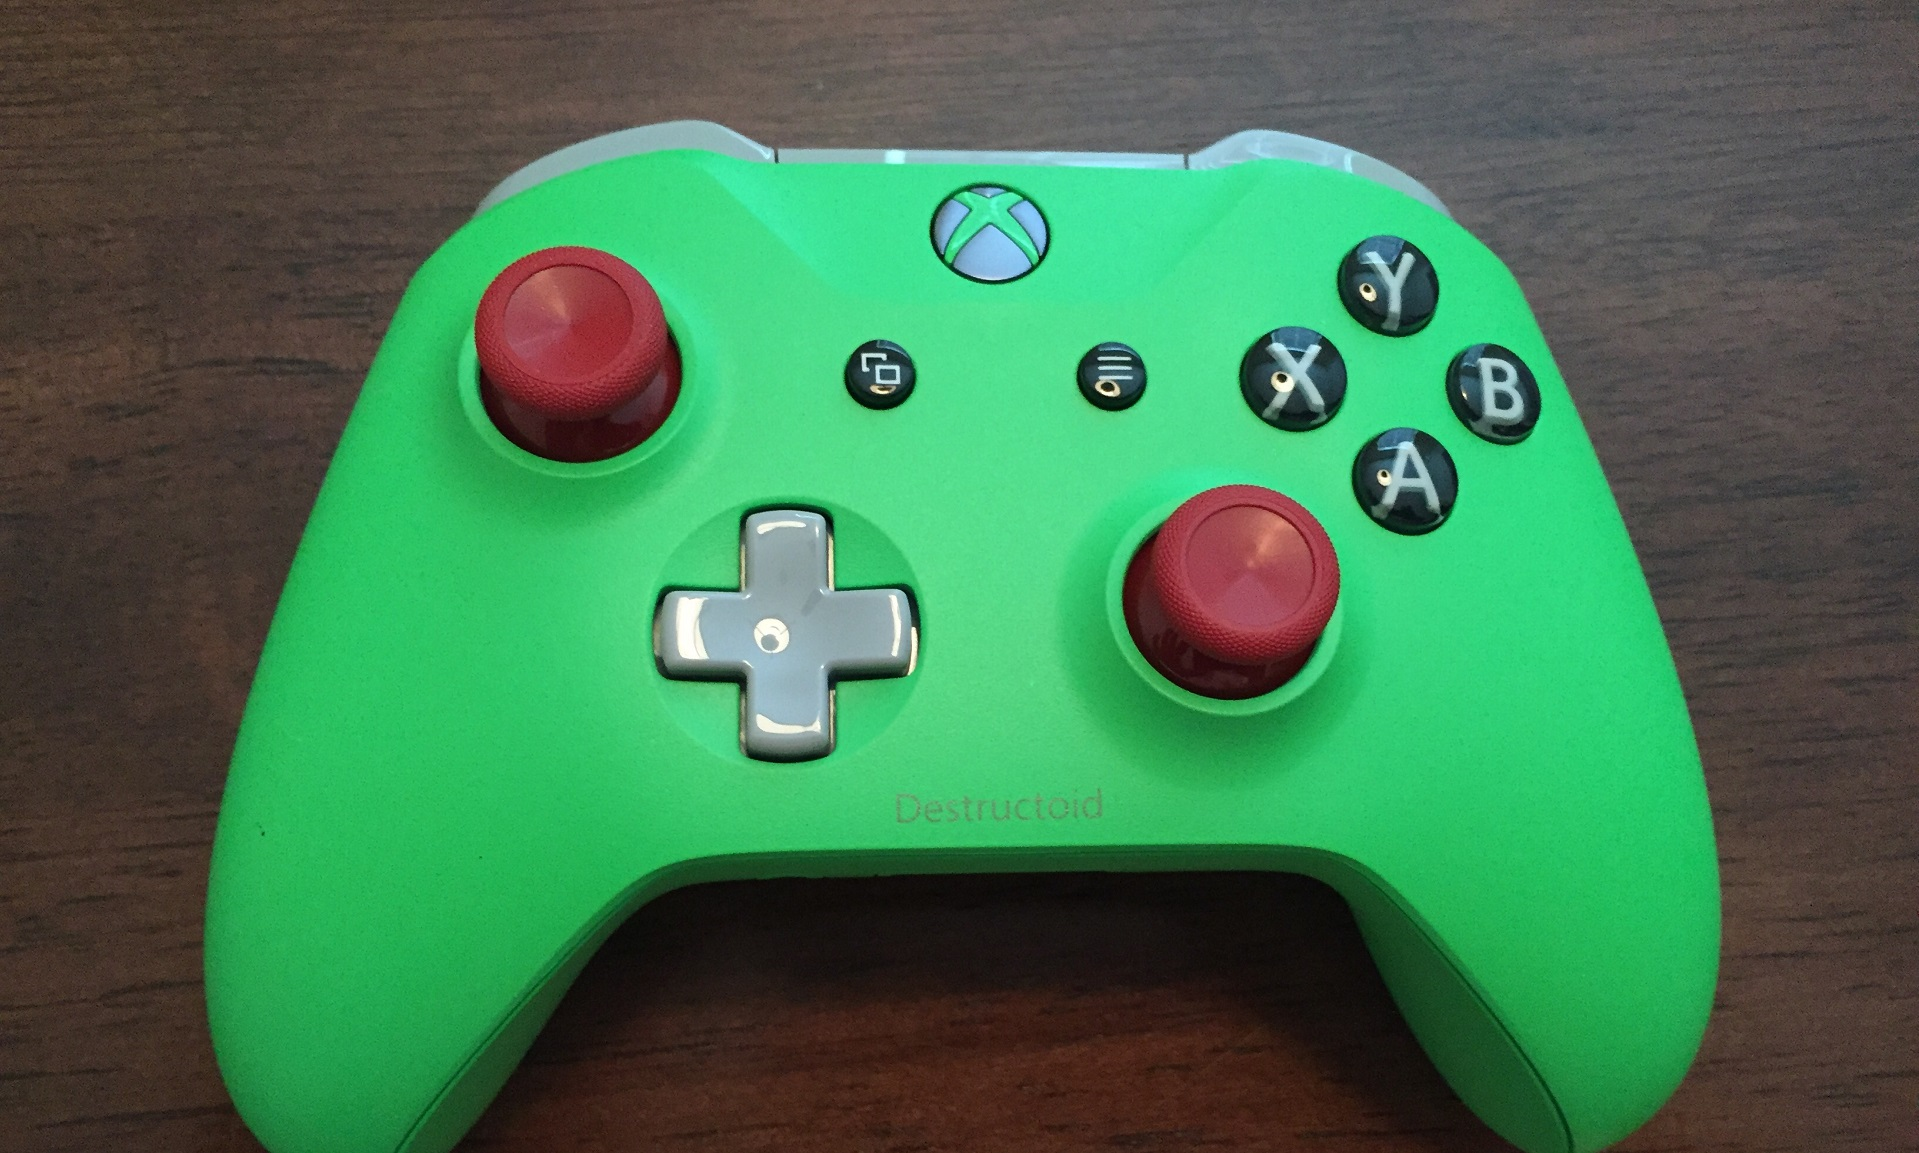 Save $10 on a custom Xbox controller before Design Lab disappears screenshot